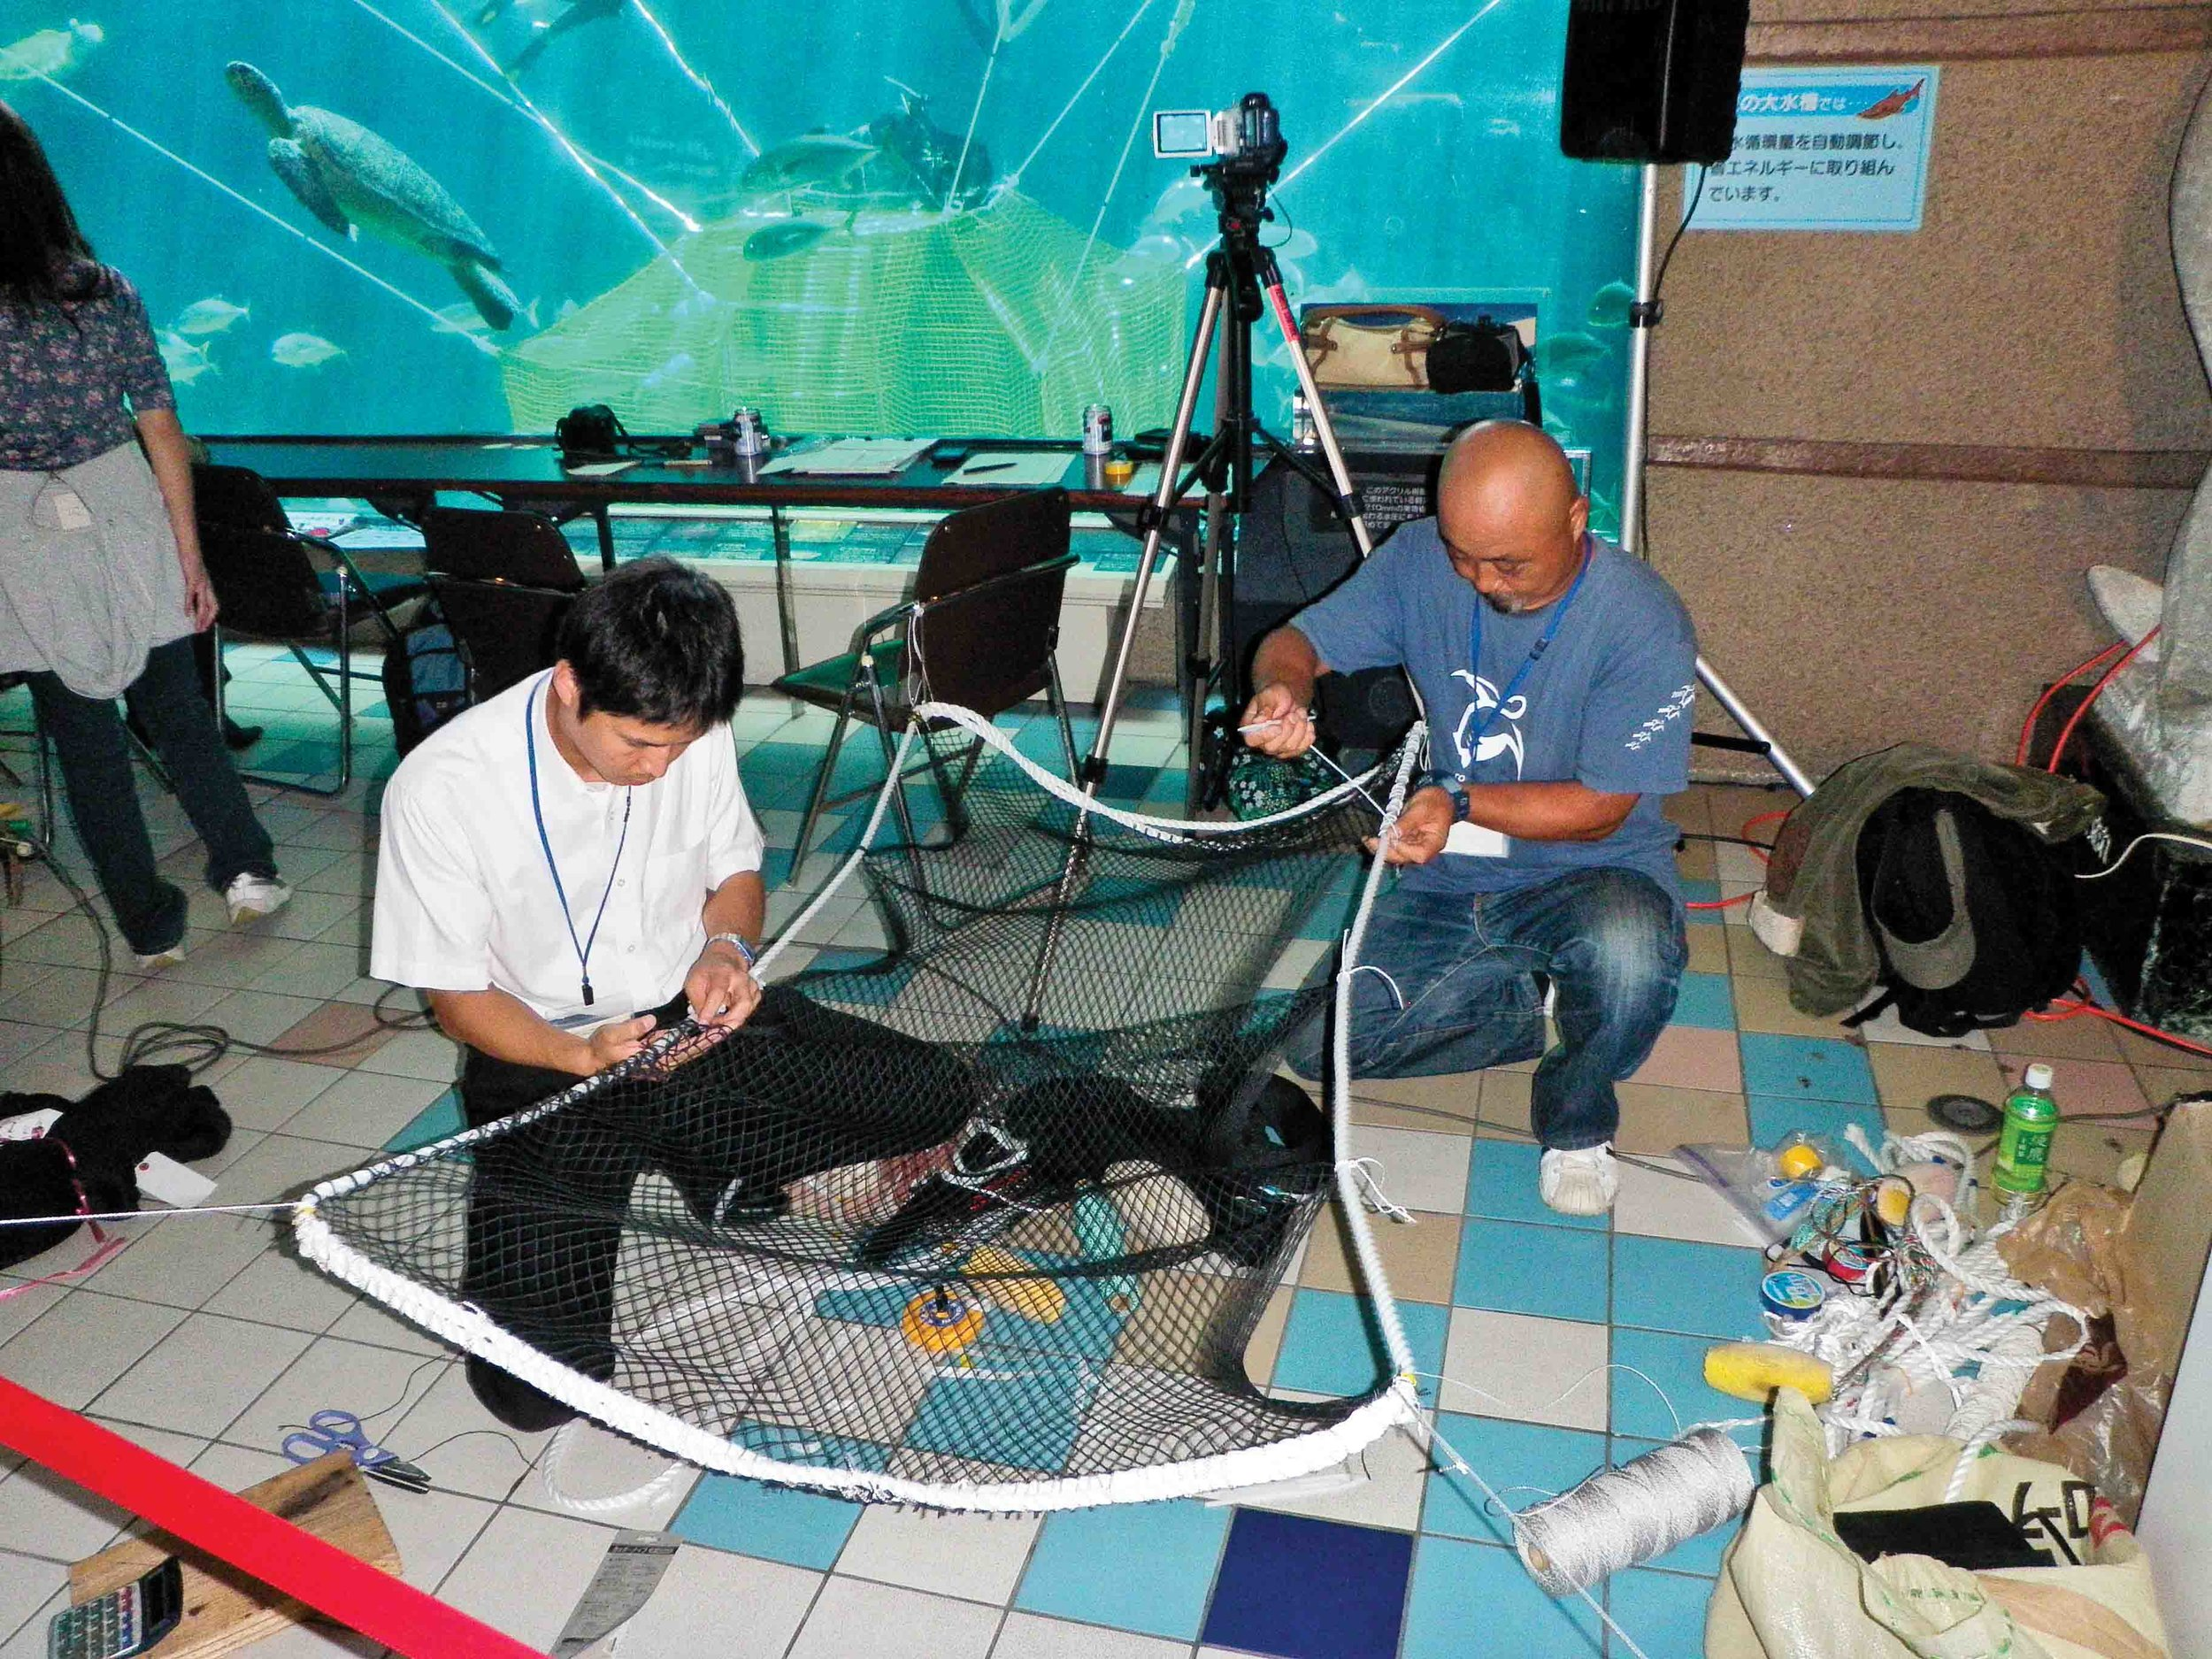 Workshop participants collaborate to modify the prototype for a pound net escape device (PED) as part of experimental trials in Kobe, Japan. © Sea Turtle Association of Japan